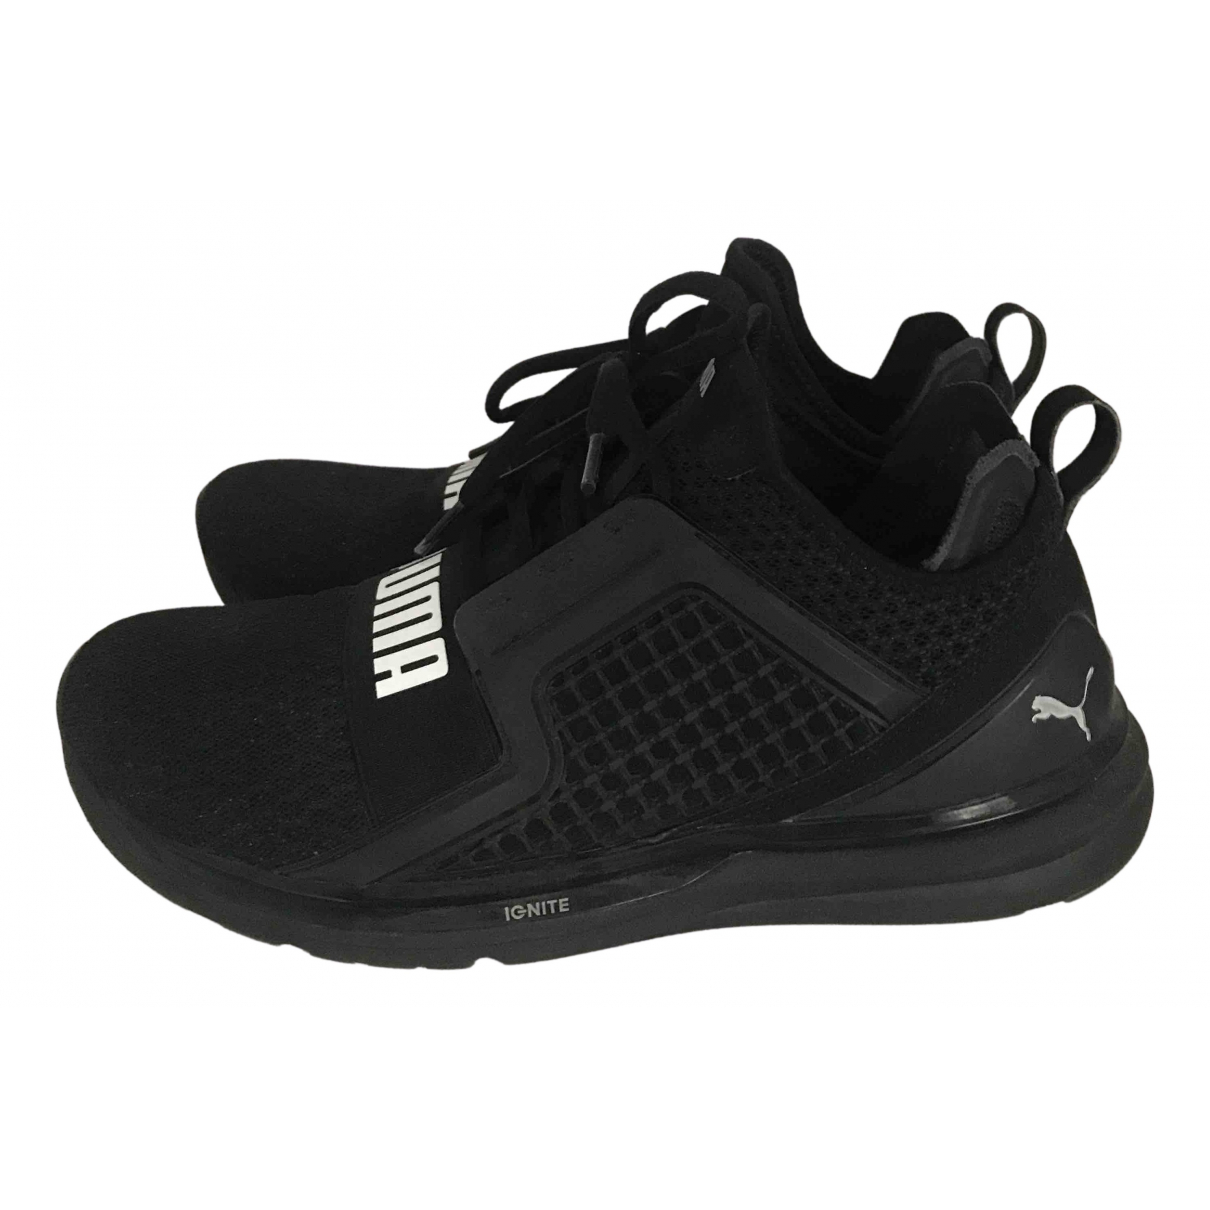 Puma N Black Cloth Trainers for Men 44 EU